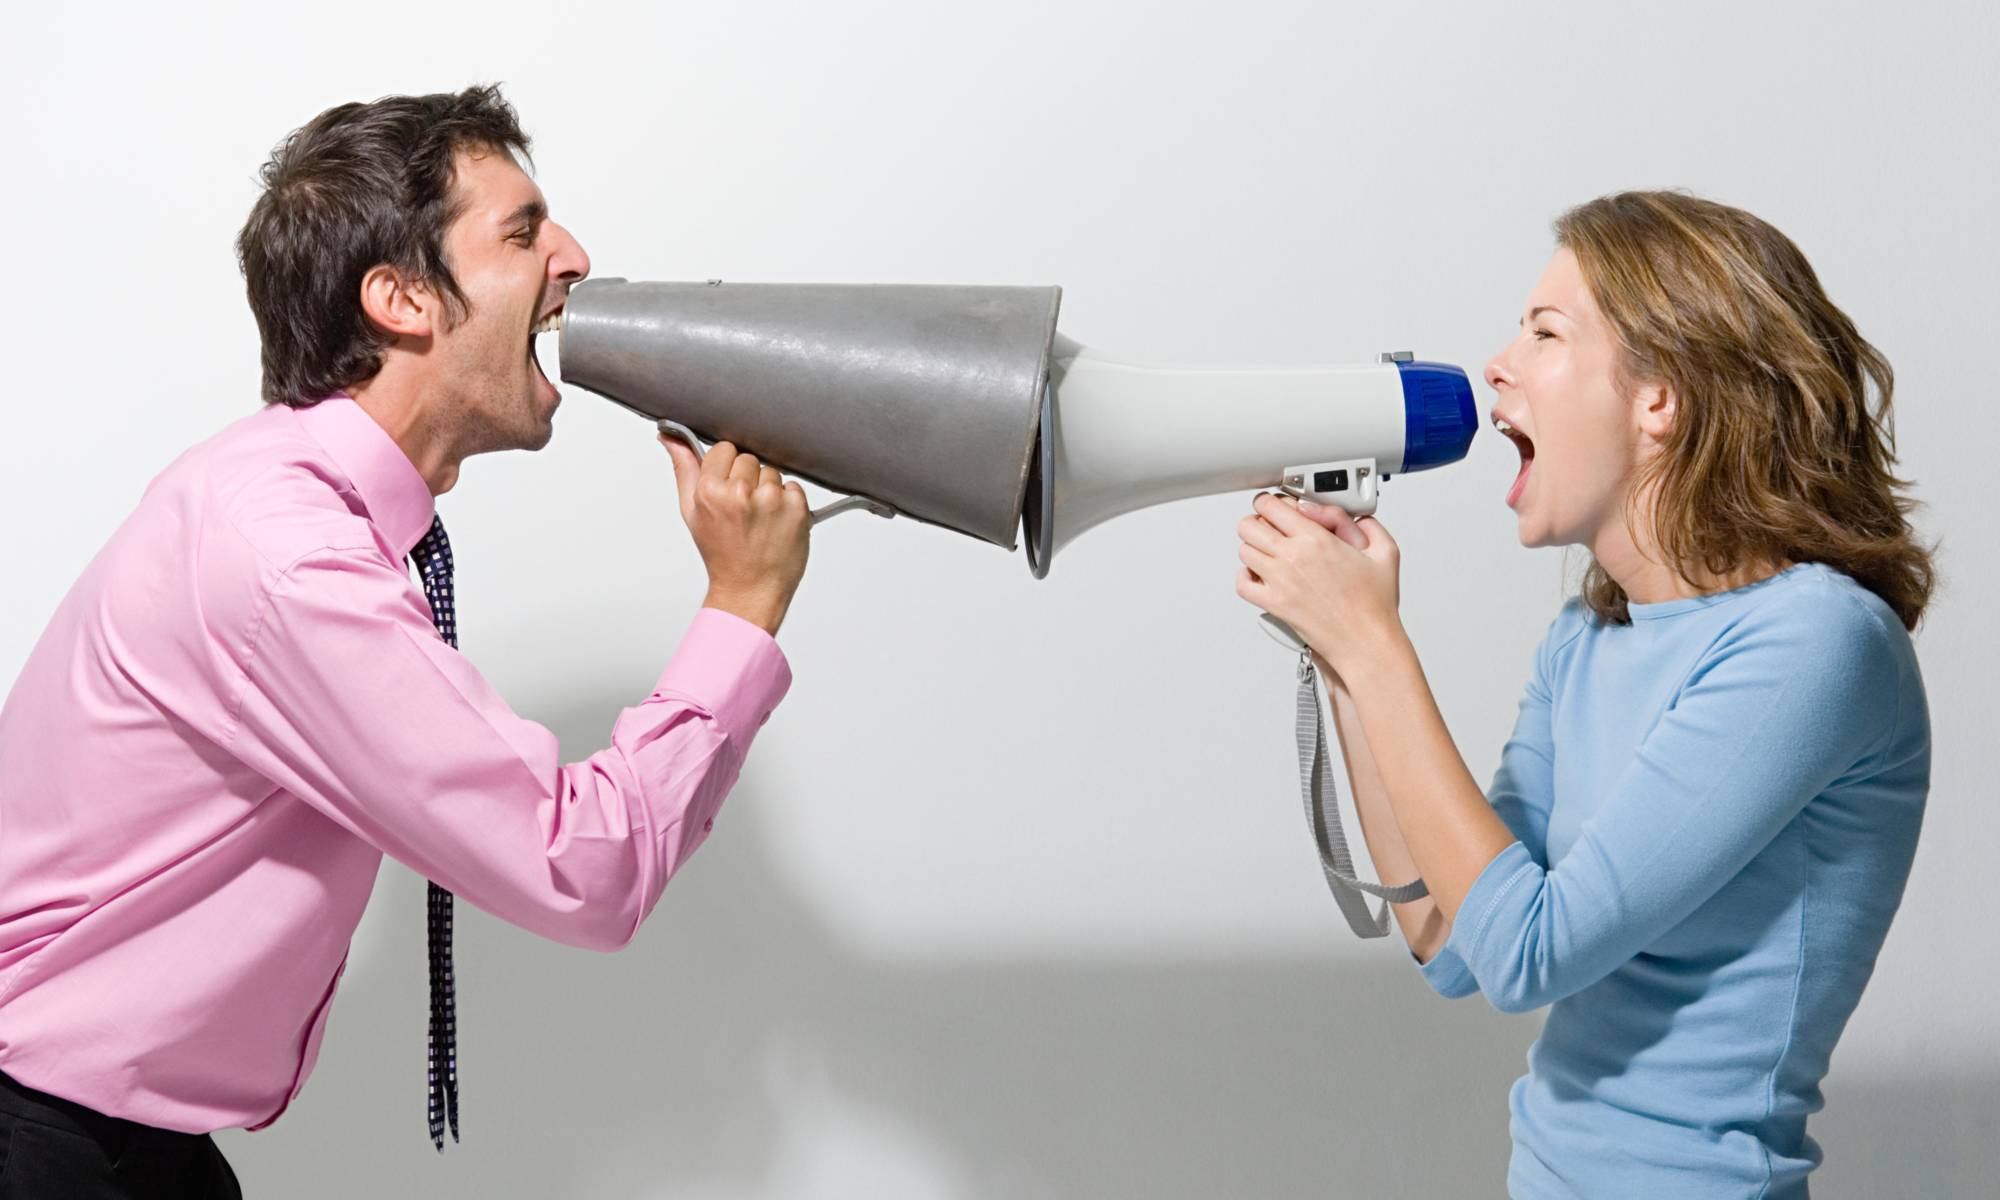 an analysis of communication in men and women